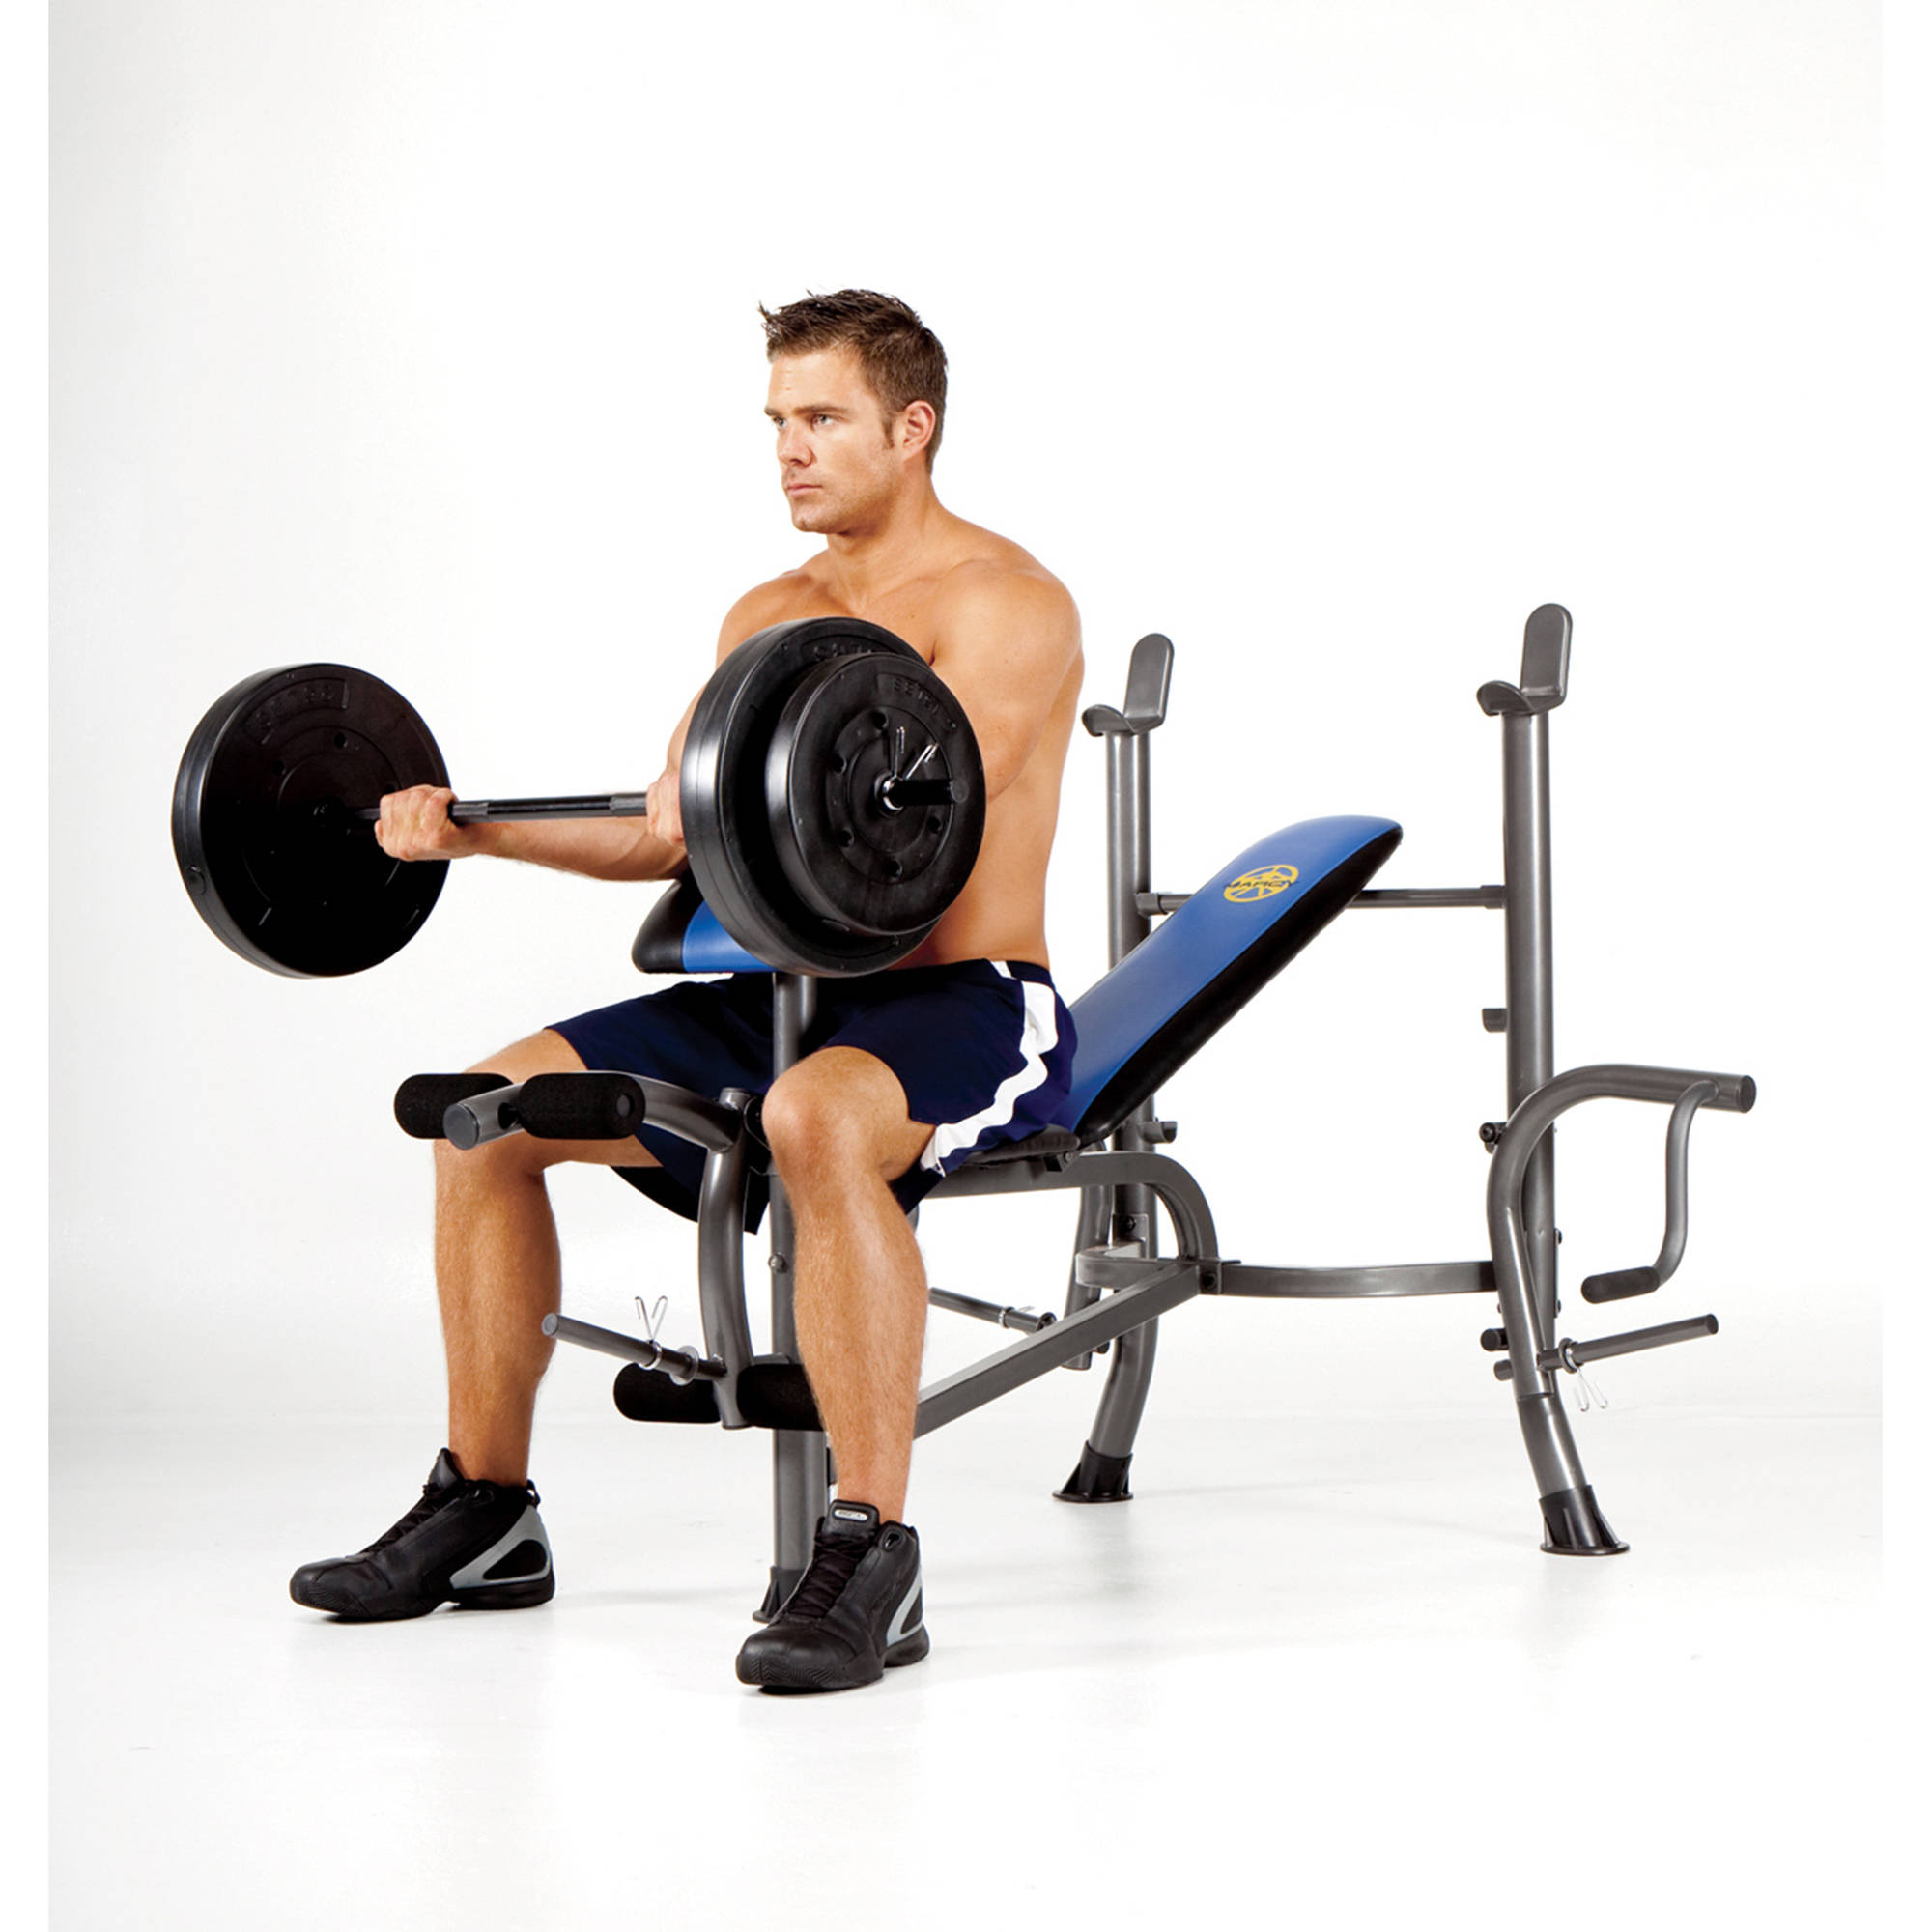 Marcy Standard Bench w/ 80lb Weight Set: MWB-36780B